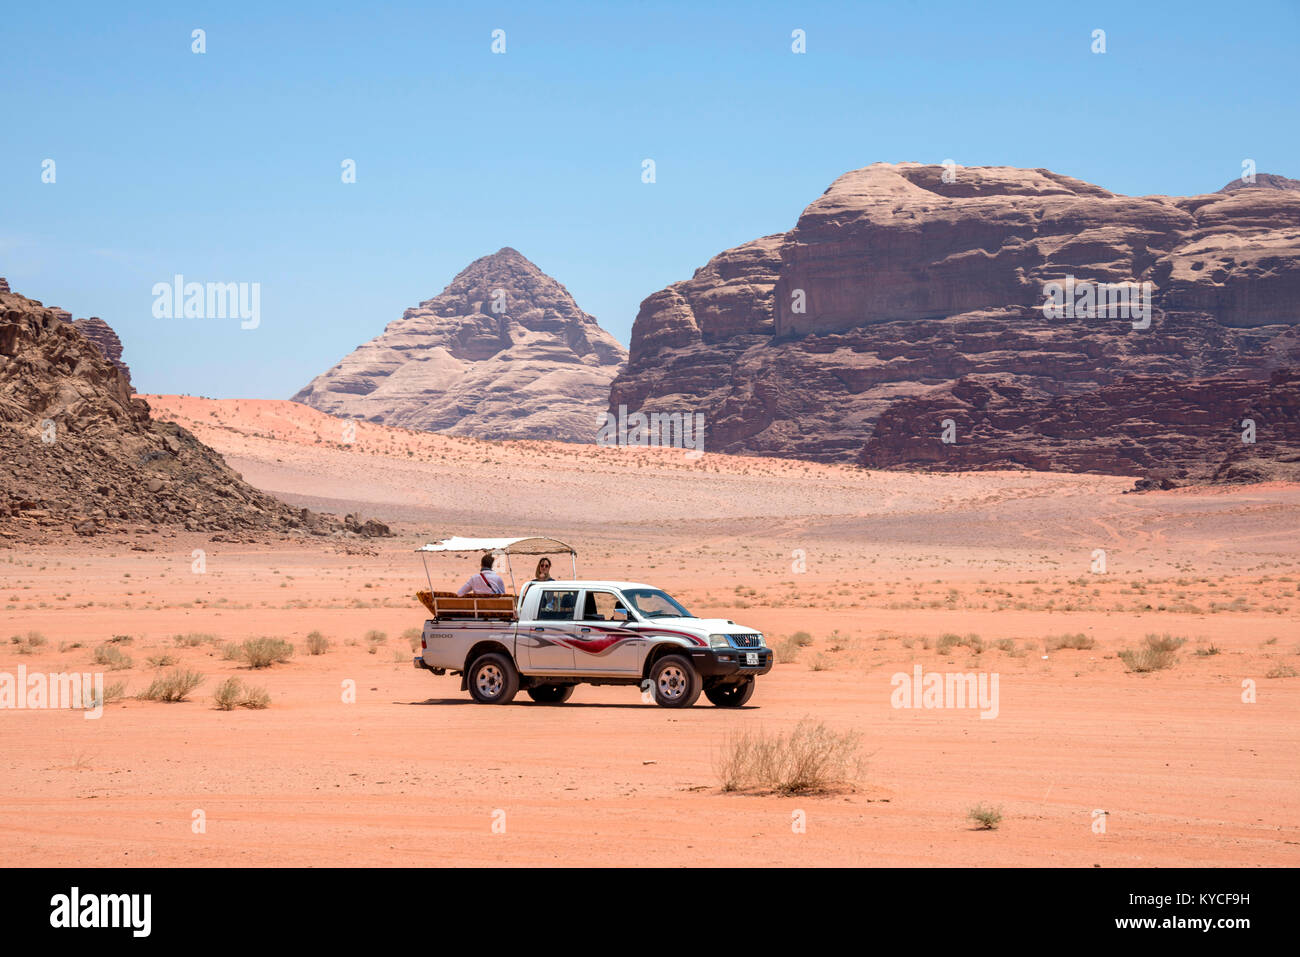 All-terrain pick-up with tourists, circulating in the desert of Wadi Rum, Jordan - Stock Image